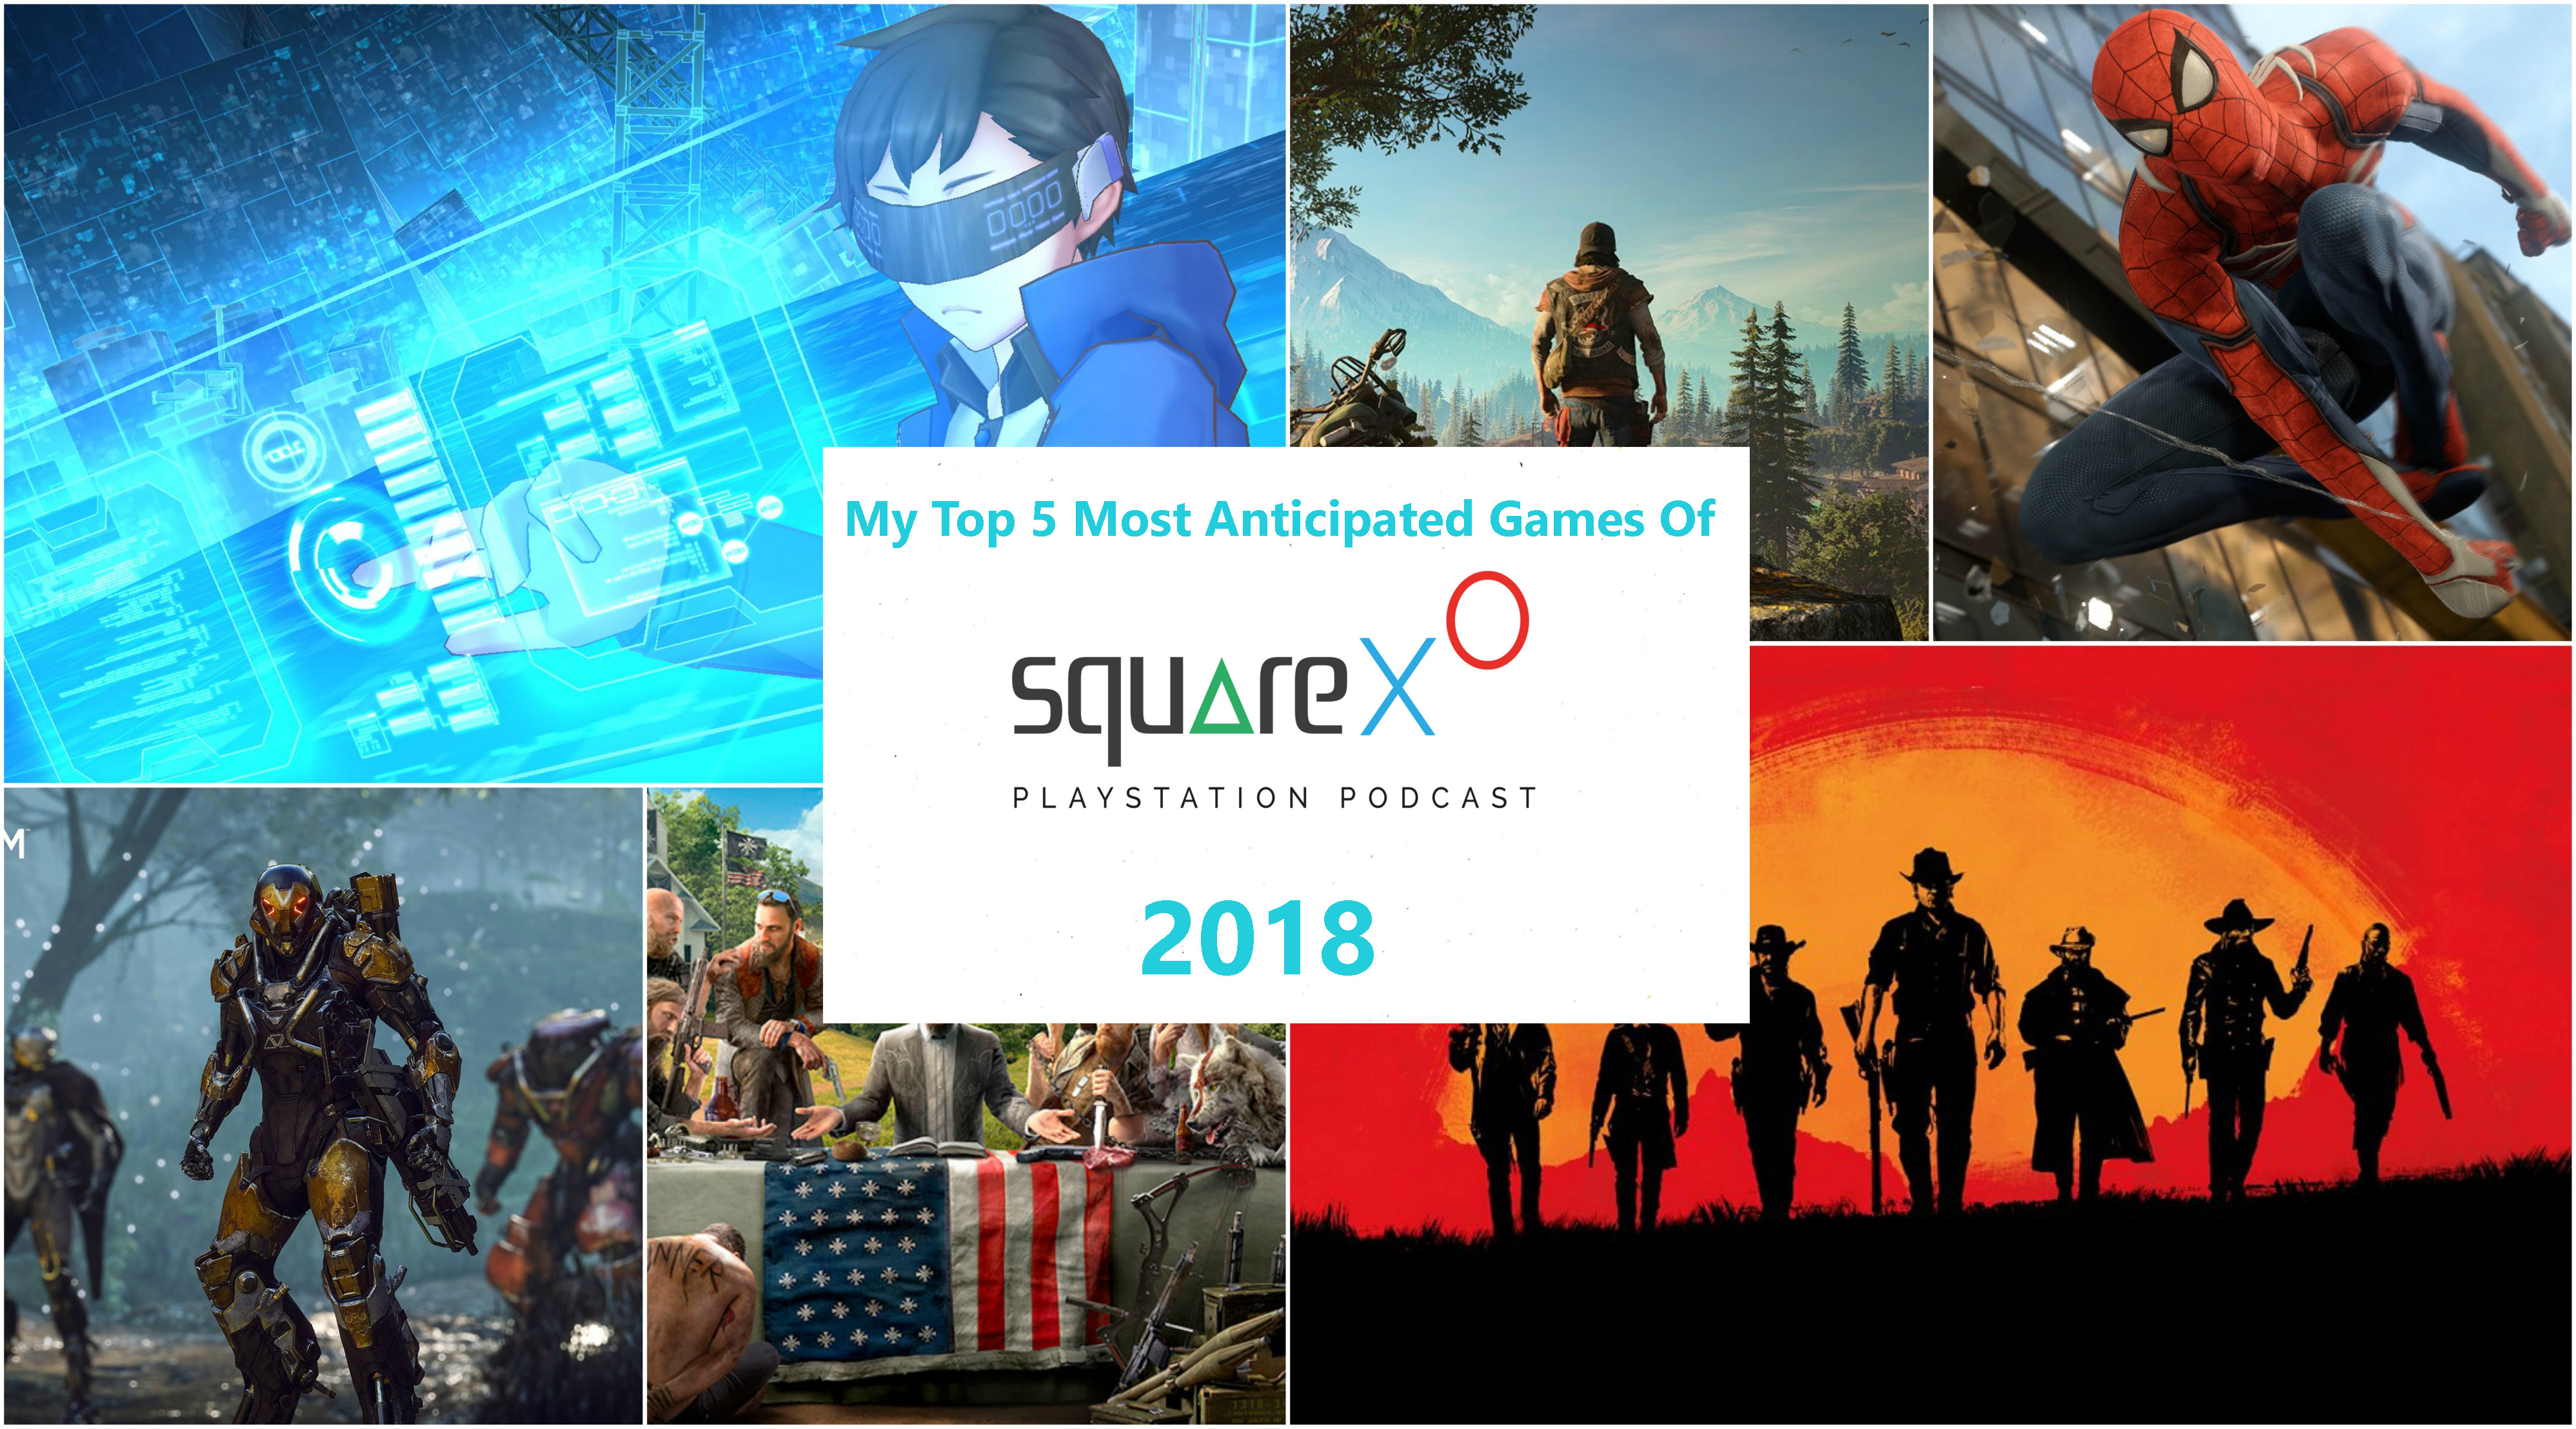 My Top 5 Most Anticipated Games Of 2018